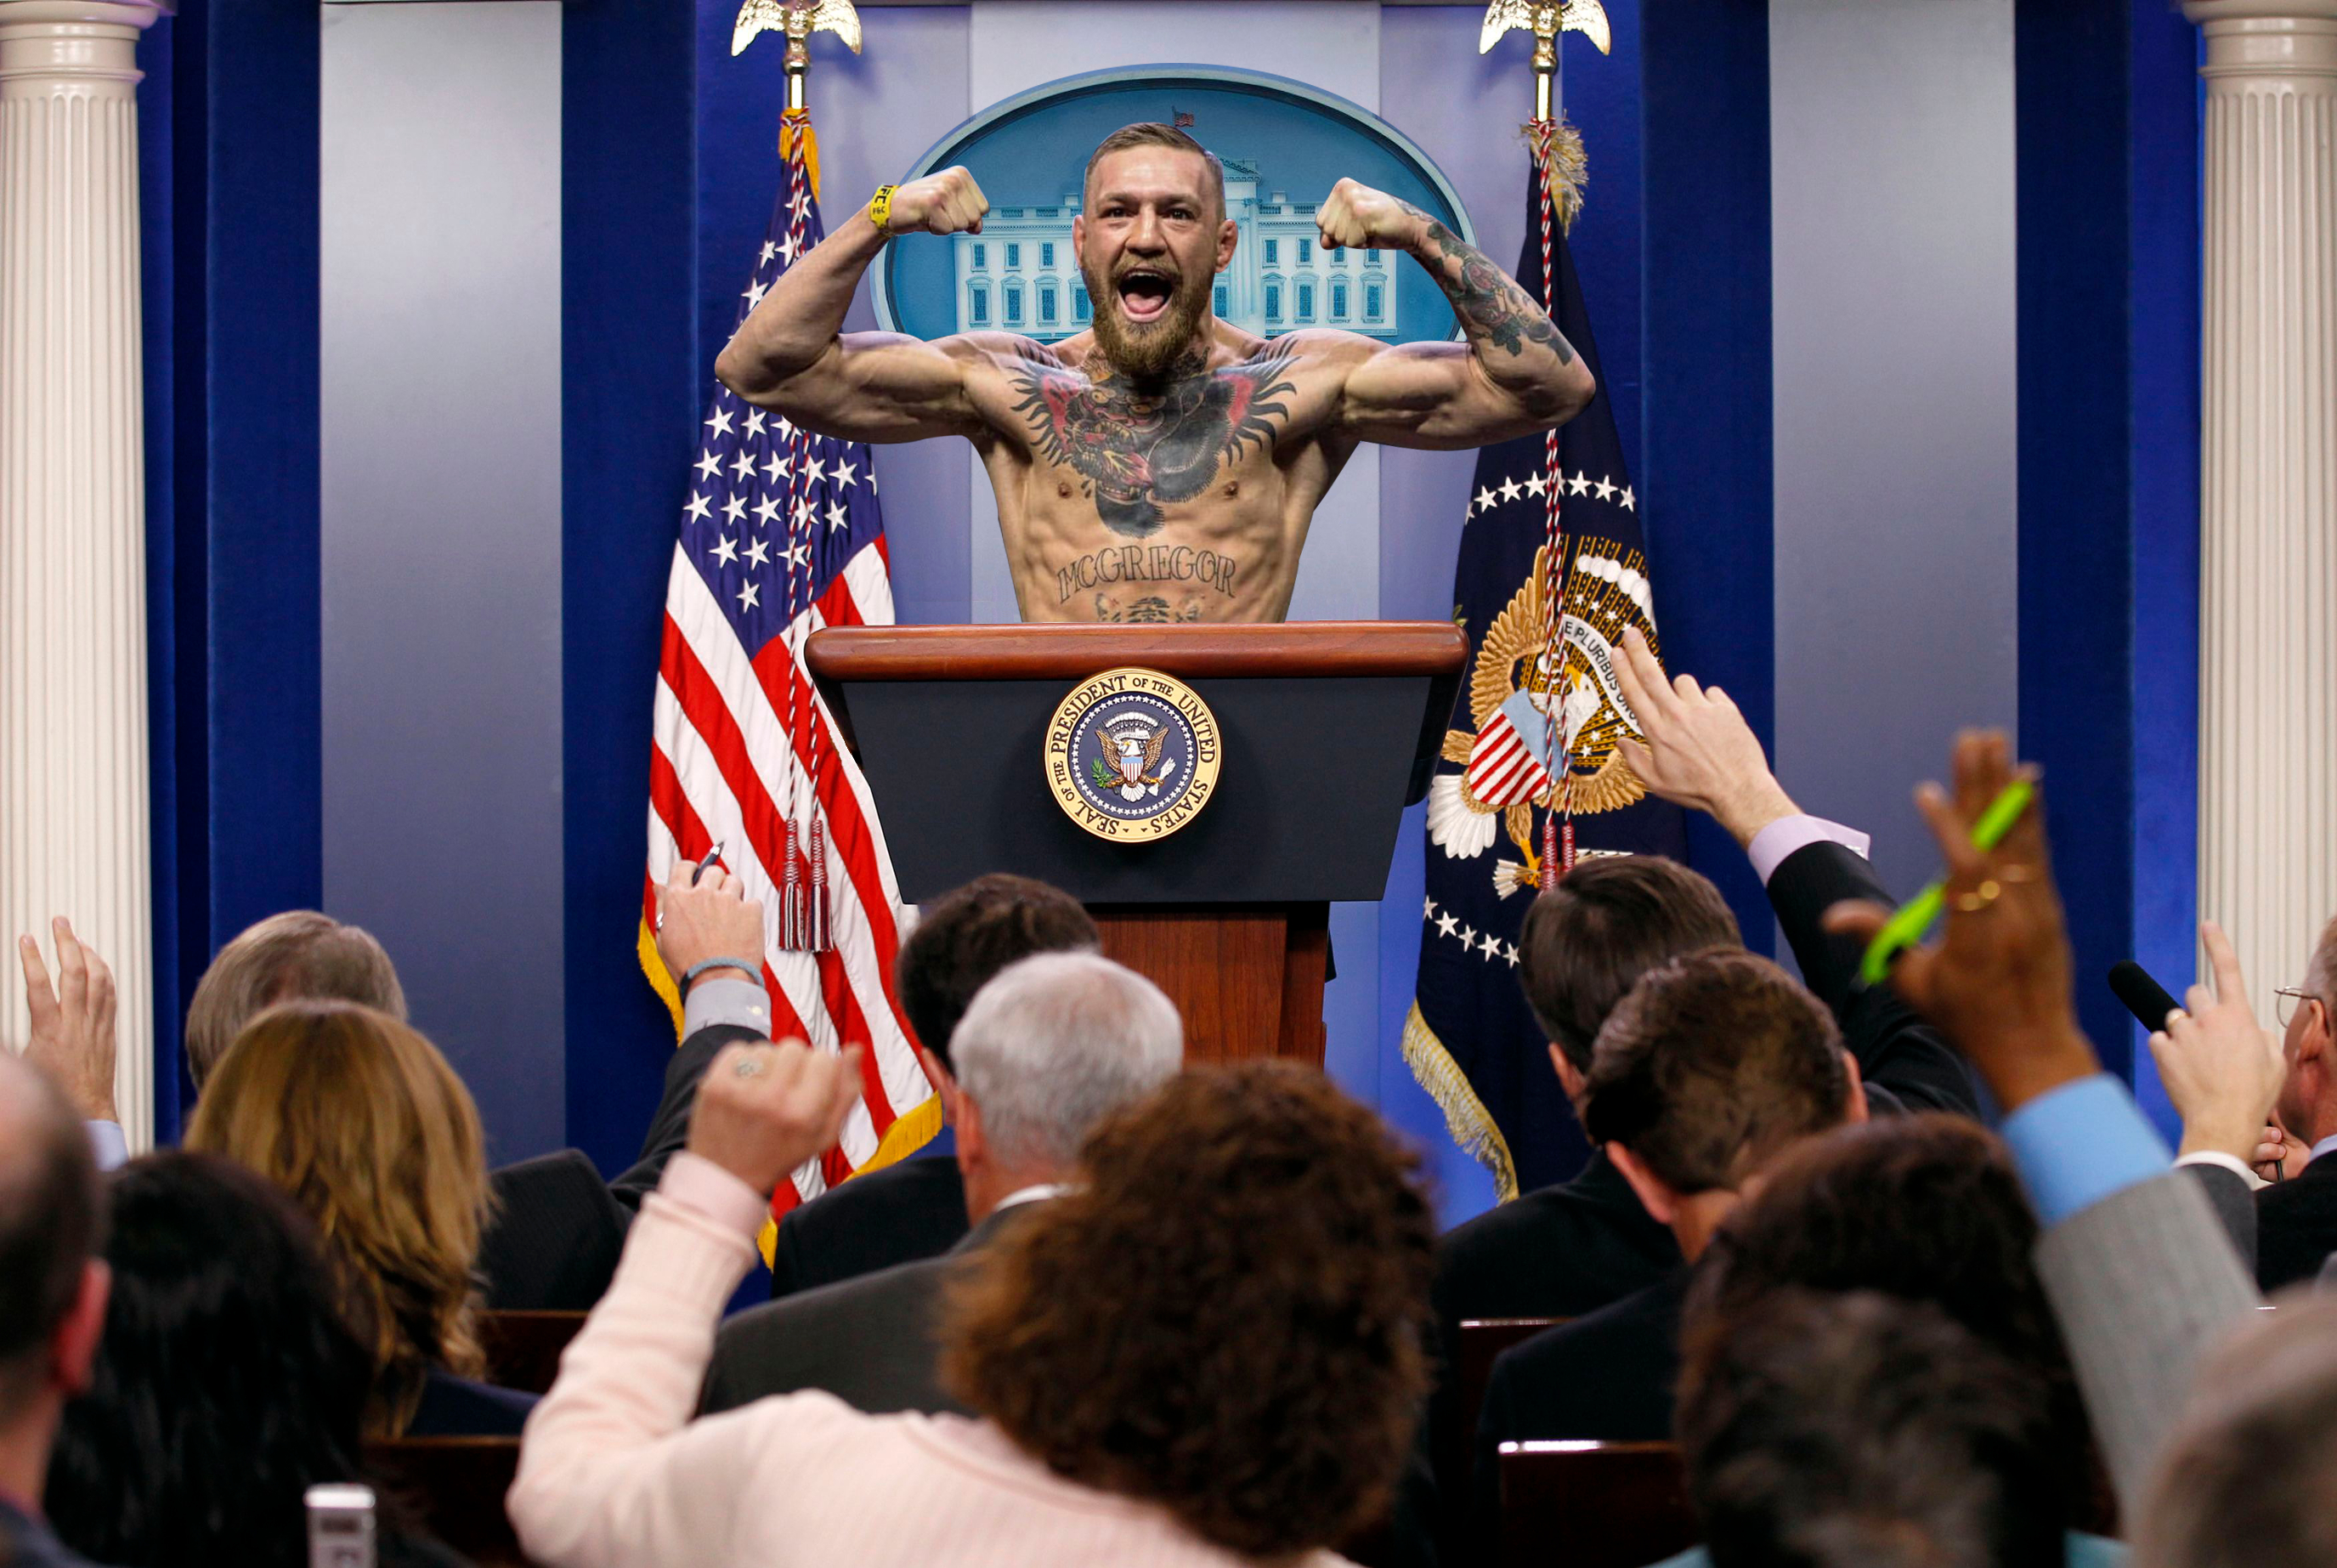 Press Sec McGregor